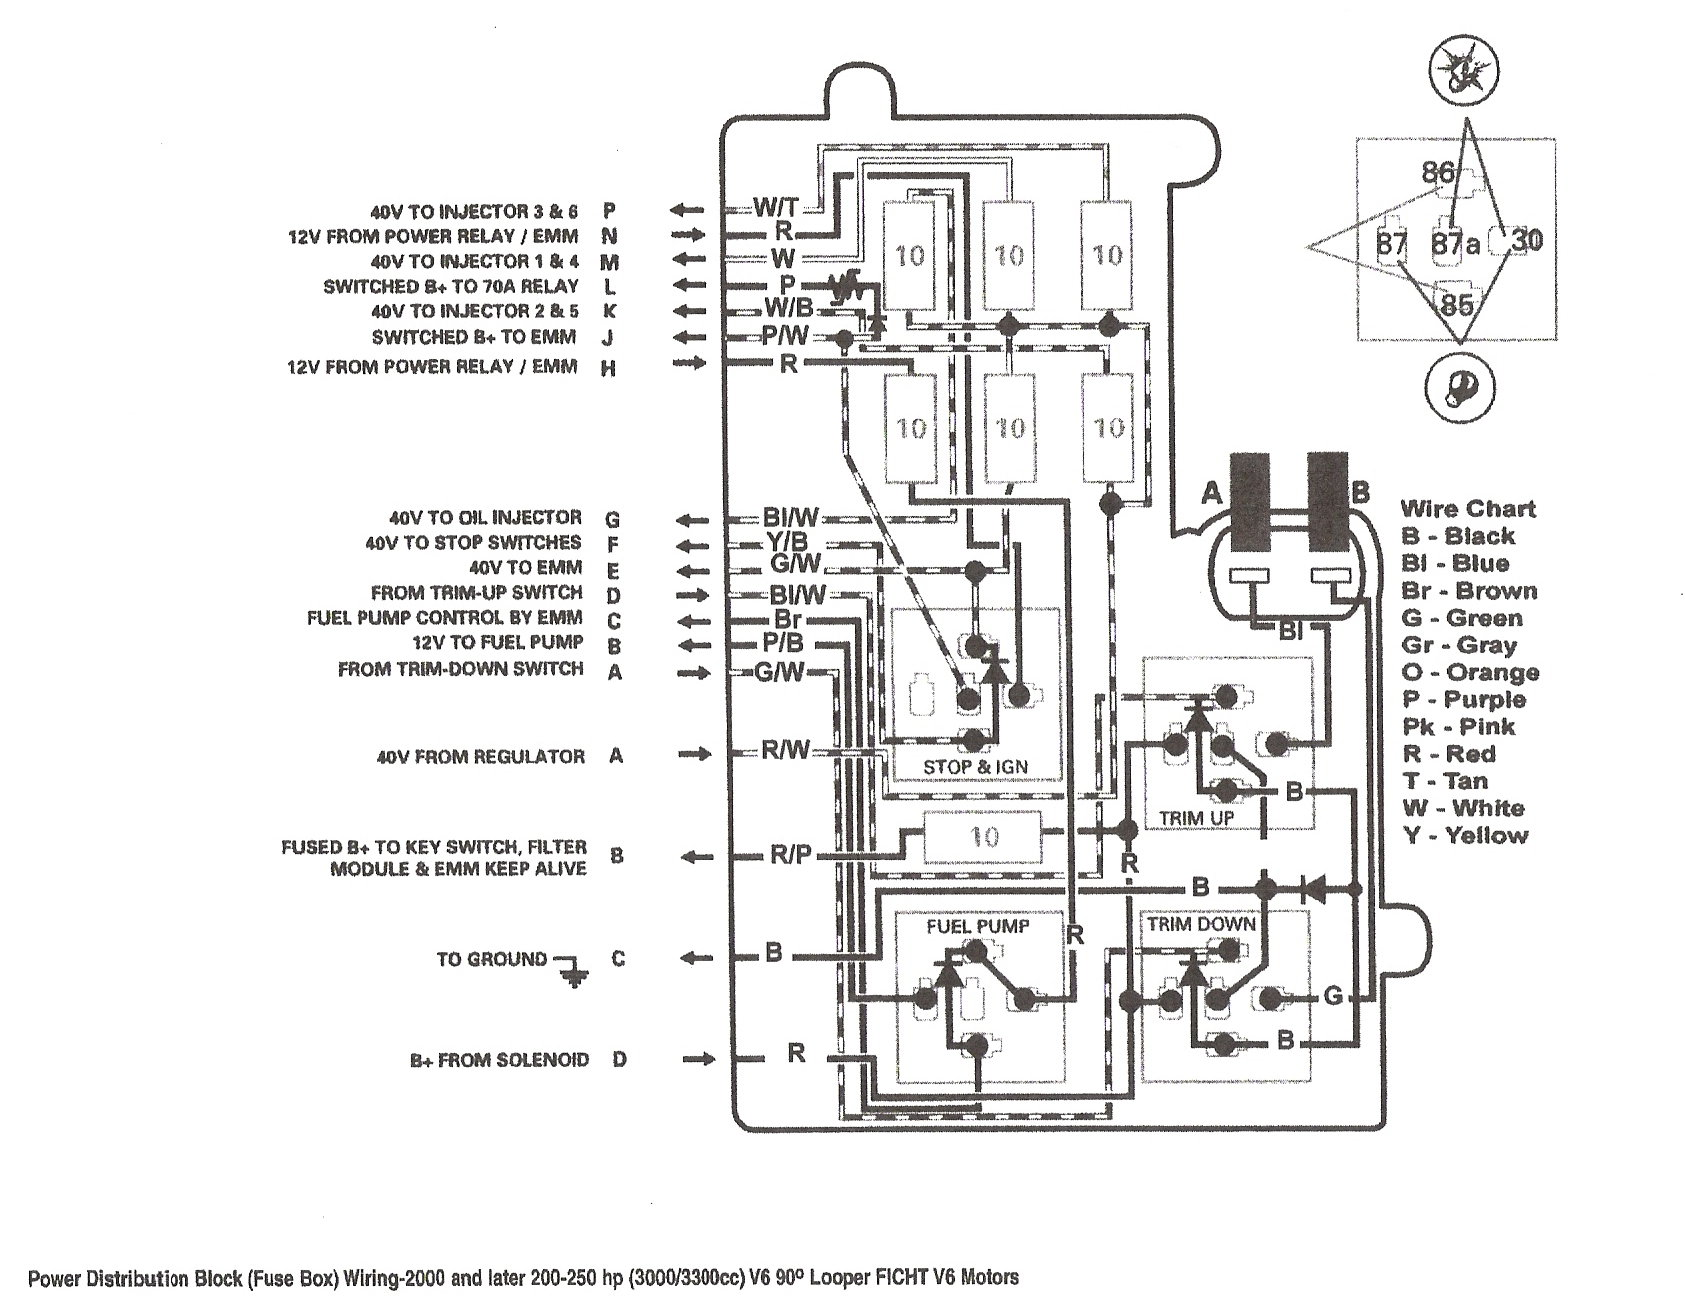 [DIAGRAM] Mercury Outboard Wiring Harness Diagram For 1976